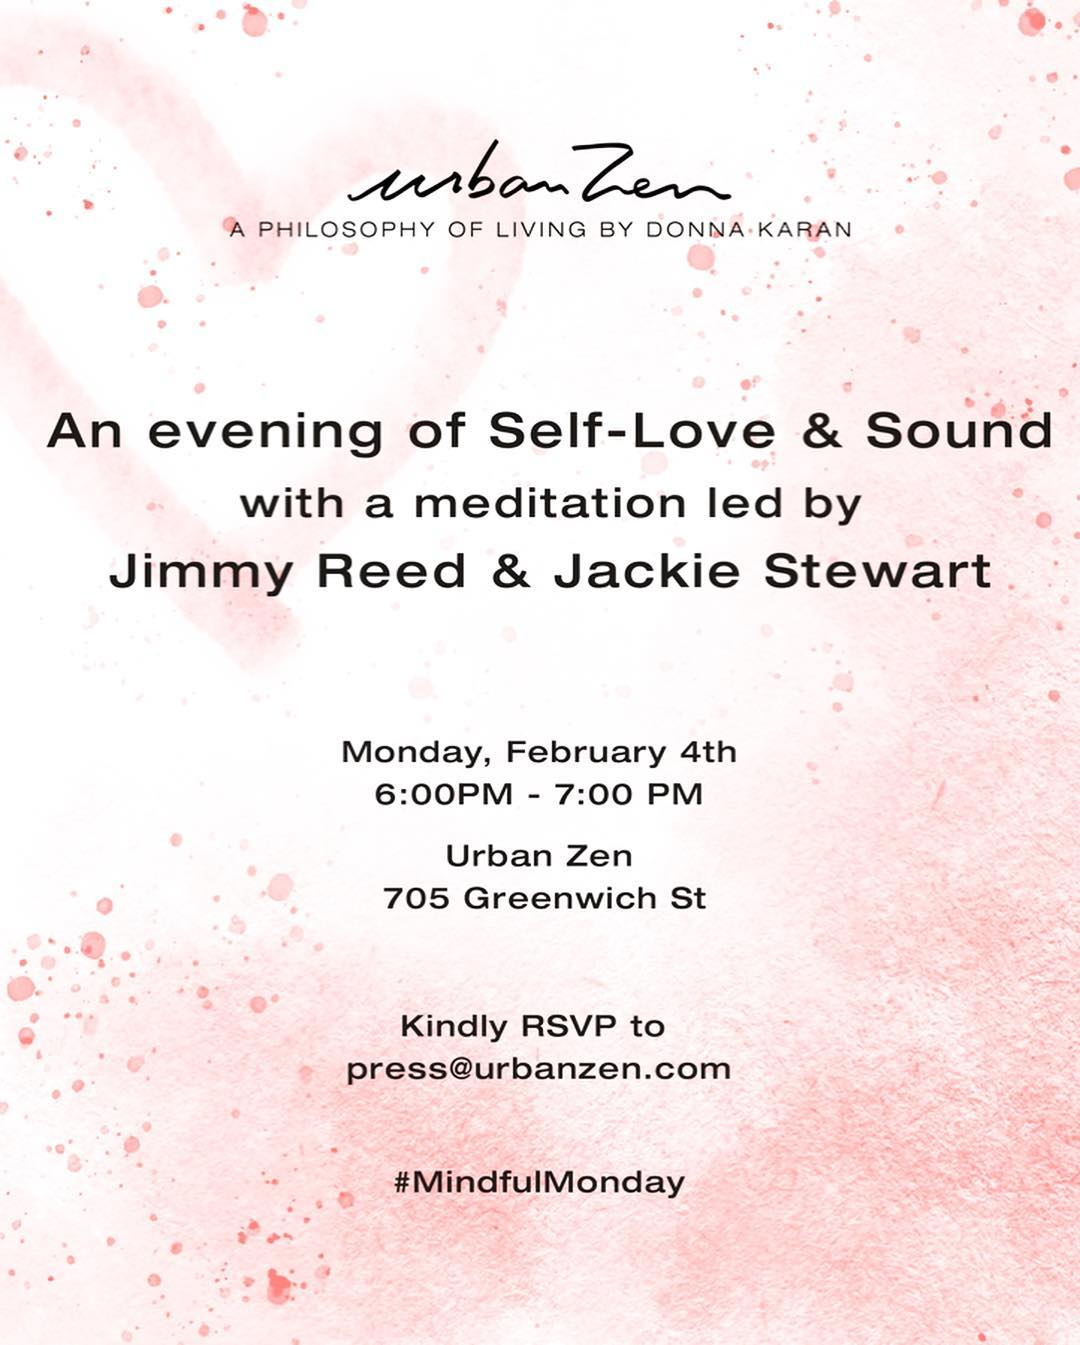 Meditation with sound - Meditation with sound led by Jackie Stewart and Jimmy Reed